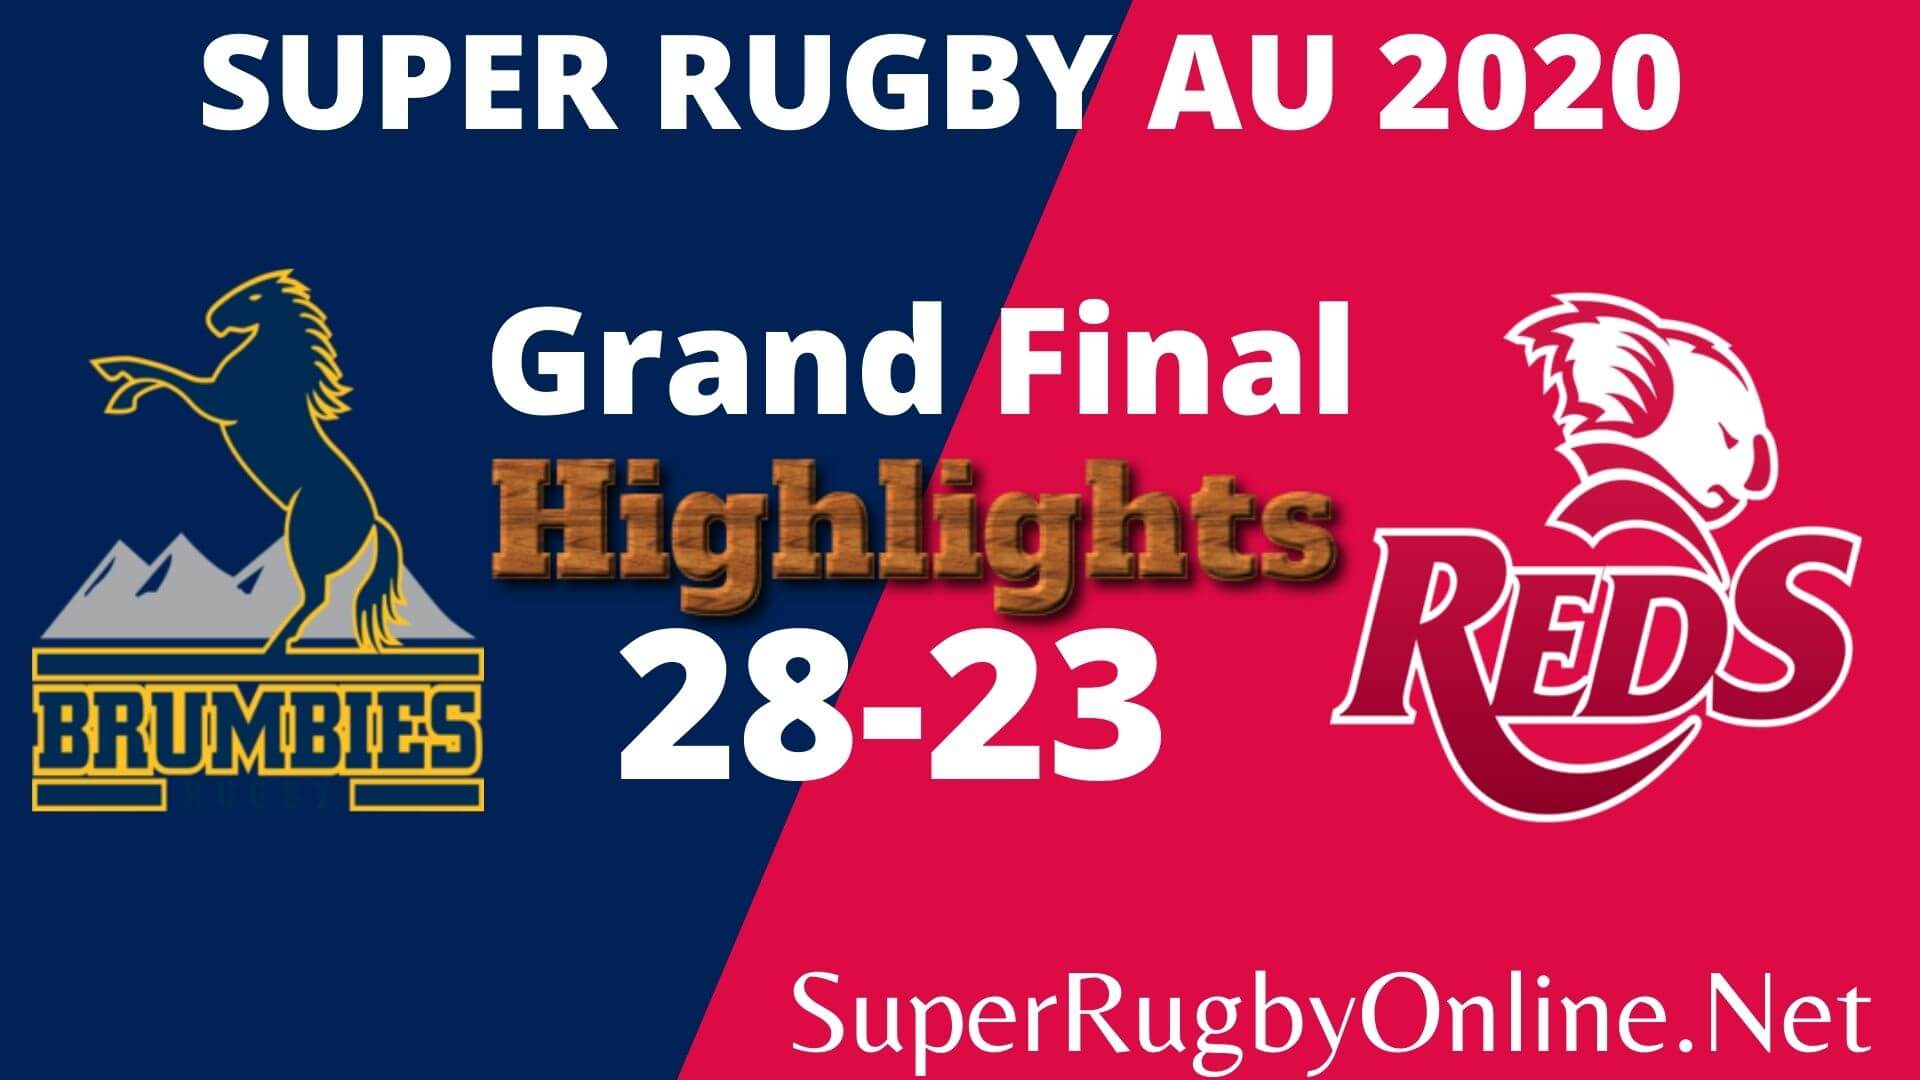 Brumbies Vs Reds Final Highlights 2020 Super Rugby Au